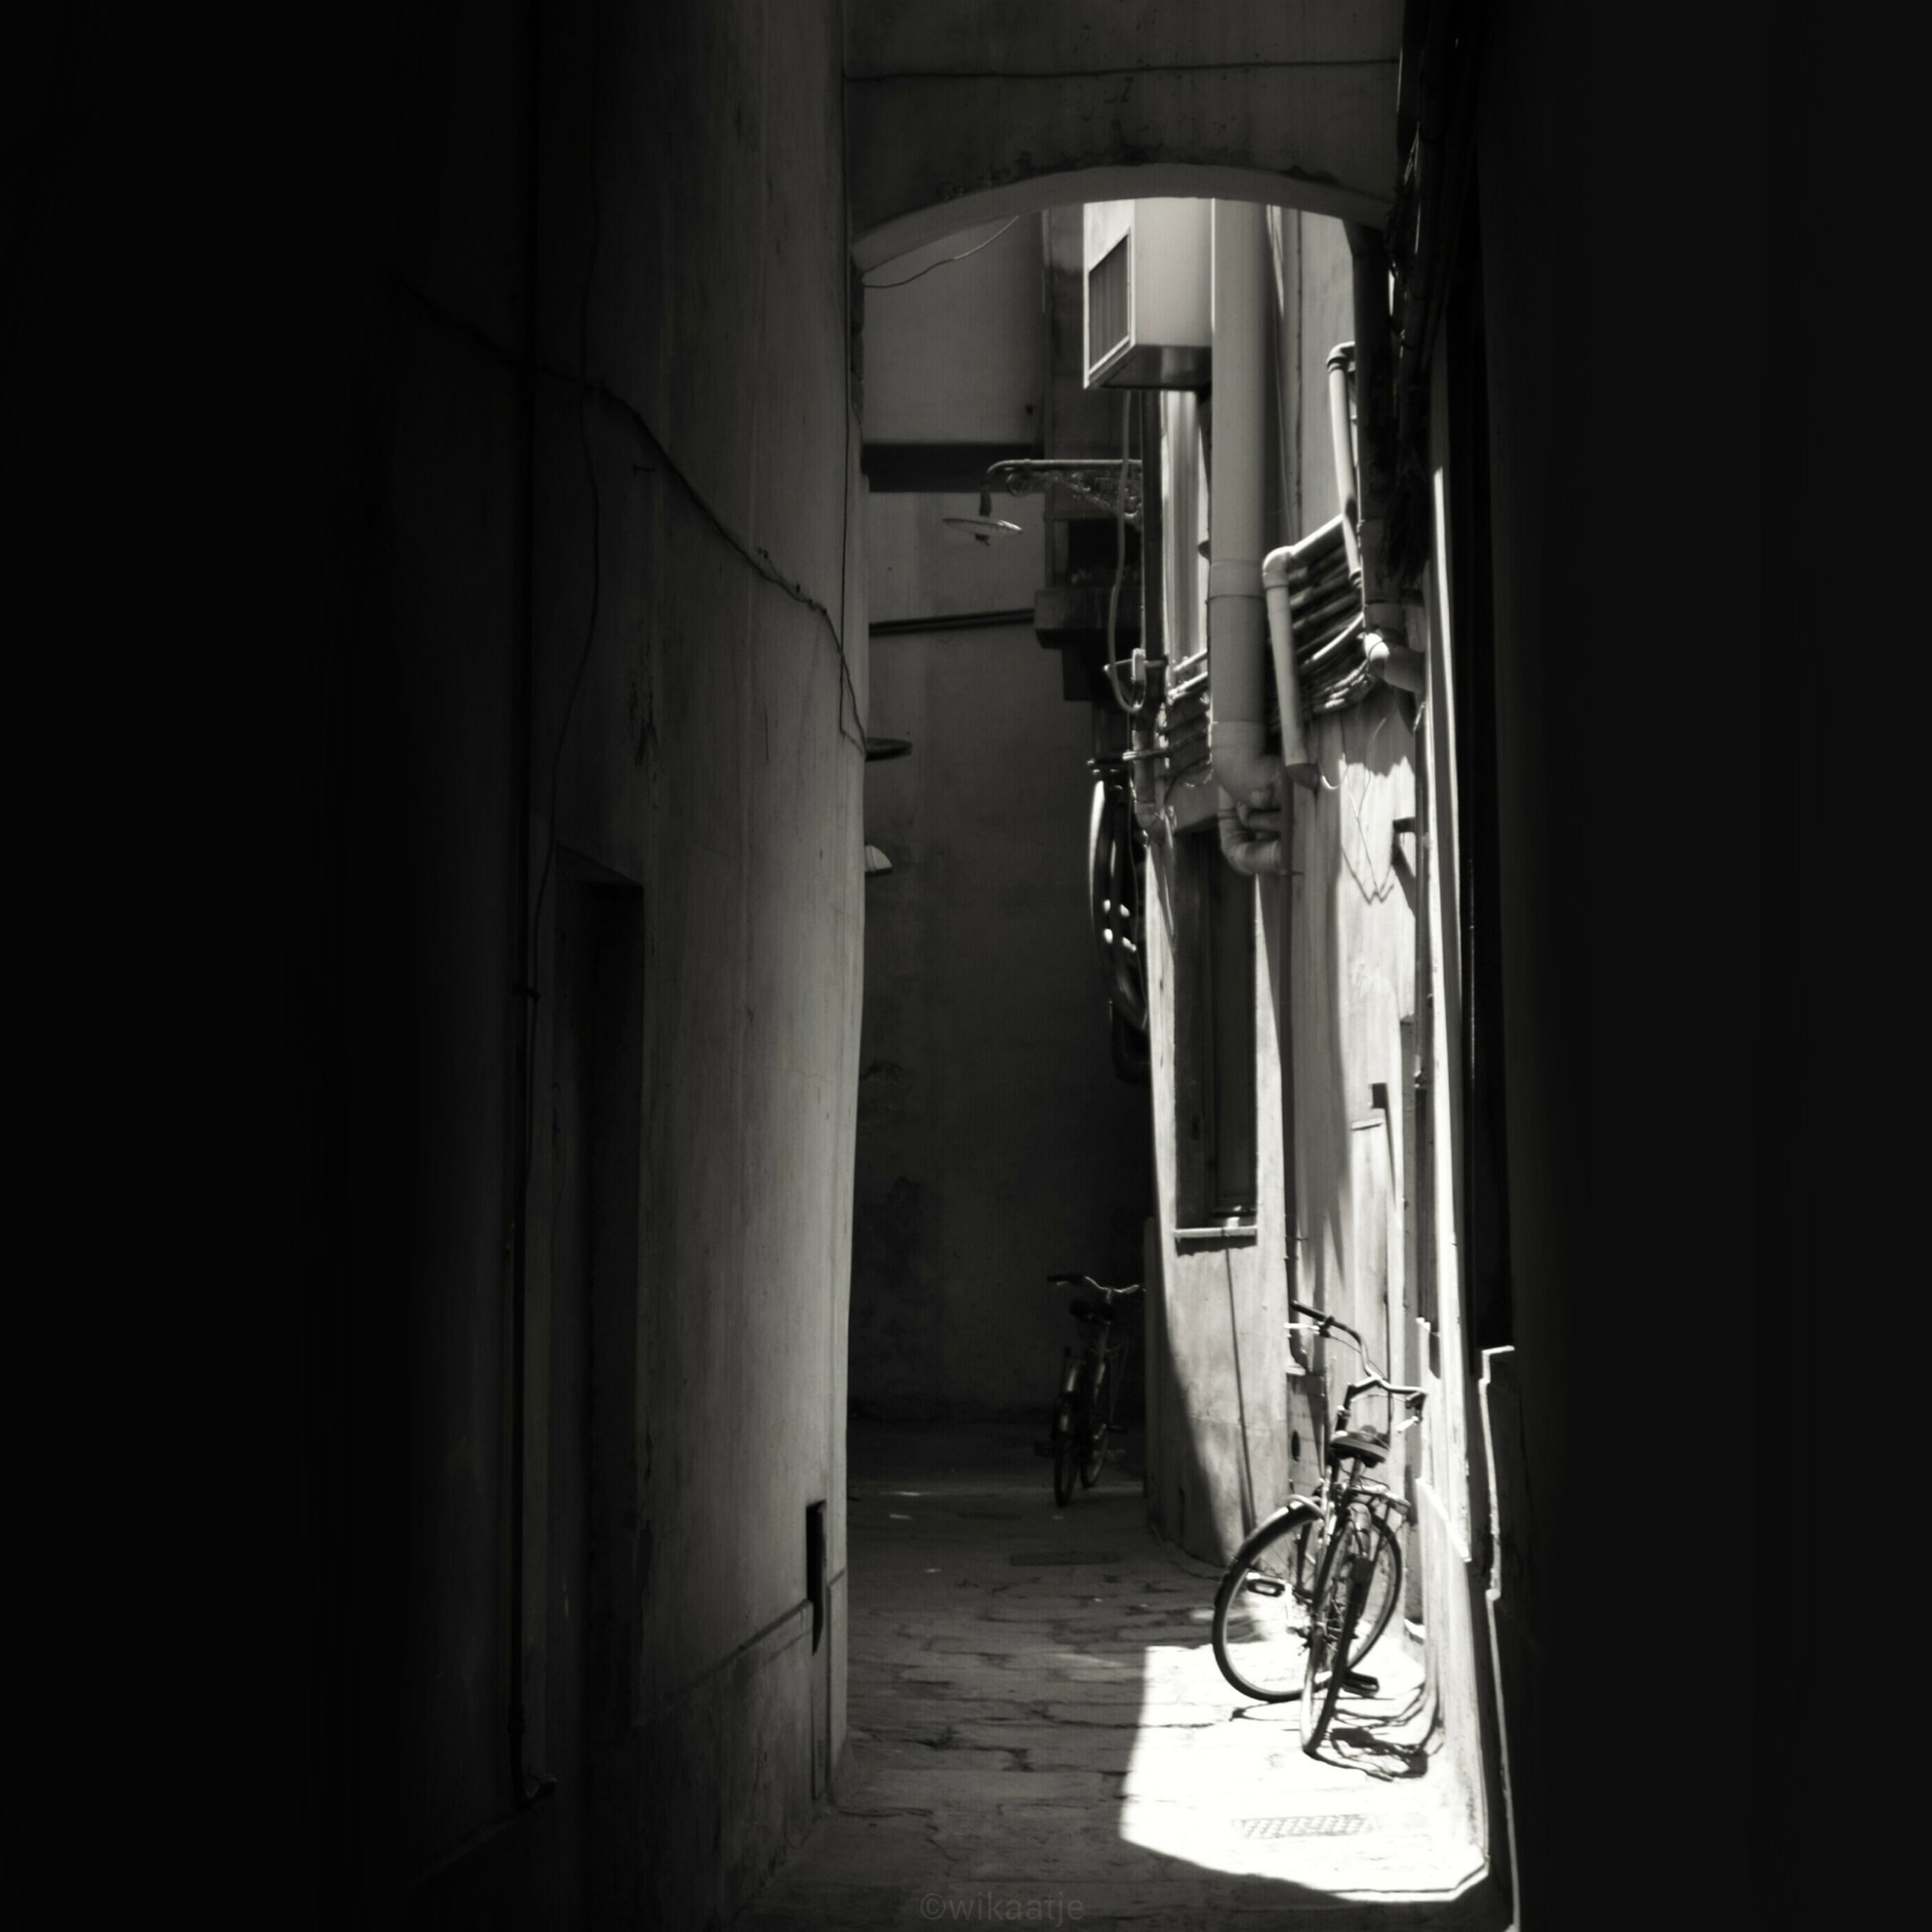 indoors, architecture, built structure, men, bicycle, window, door, sunlight, transportation, house, full length, day, building exterior, narrow, shadow, chair, absence, lifestyles